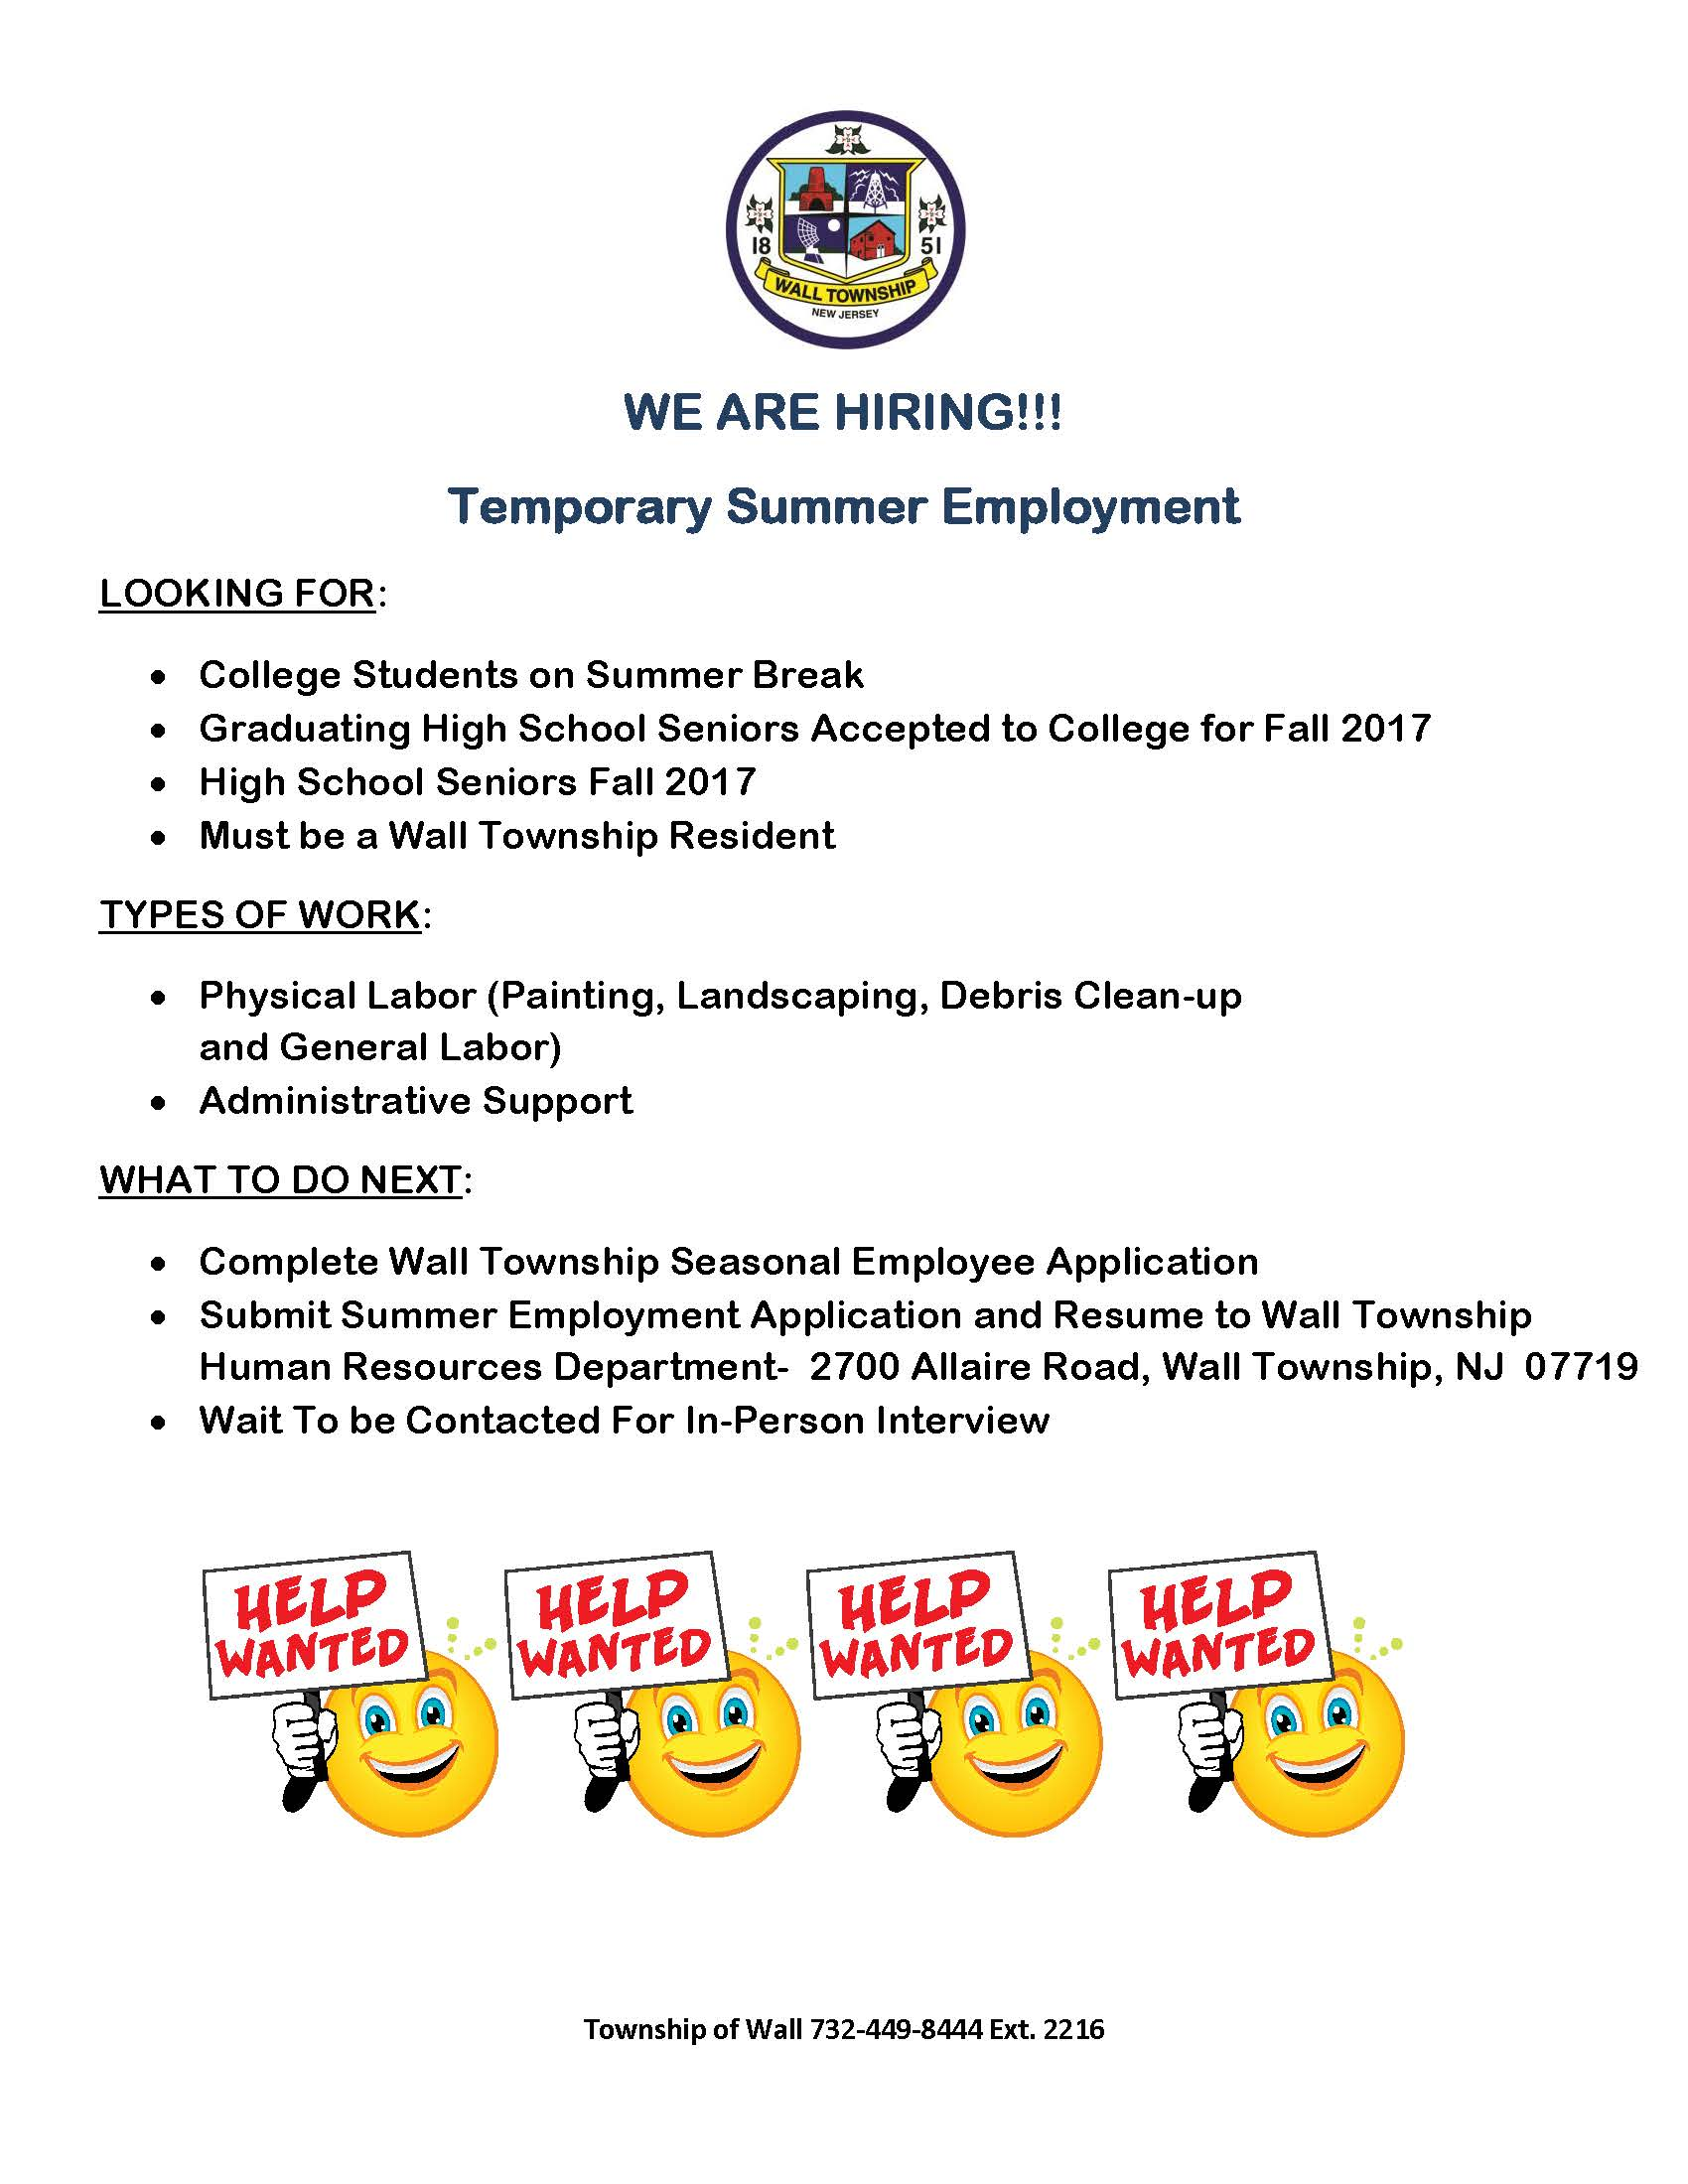 wall township nj official website official website wall township seasonal employment flyer 2017